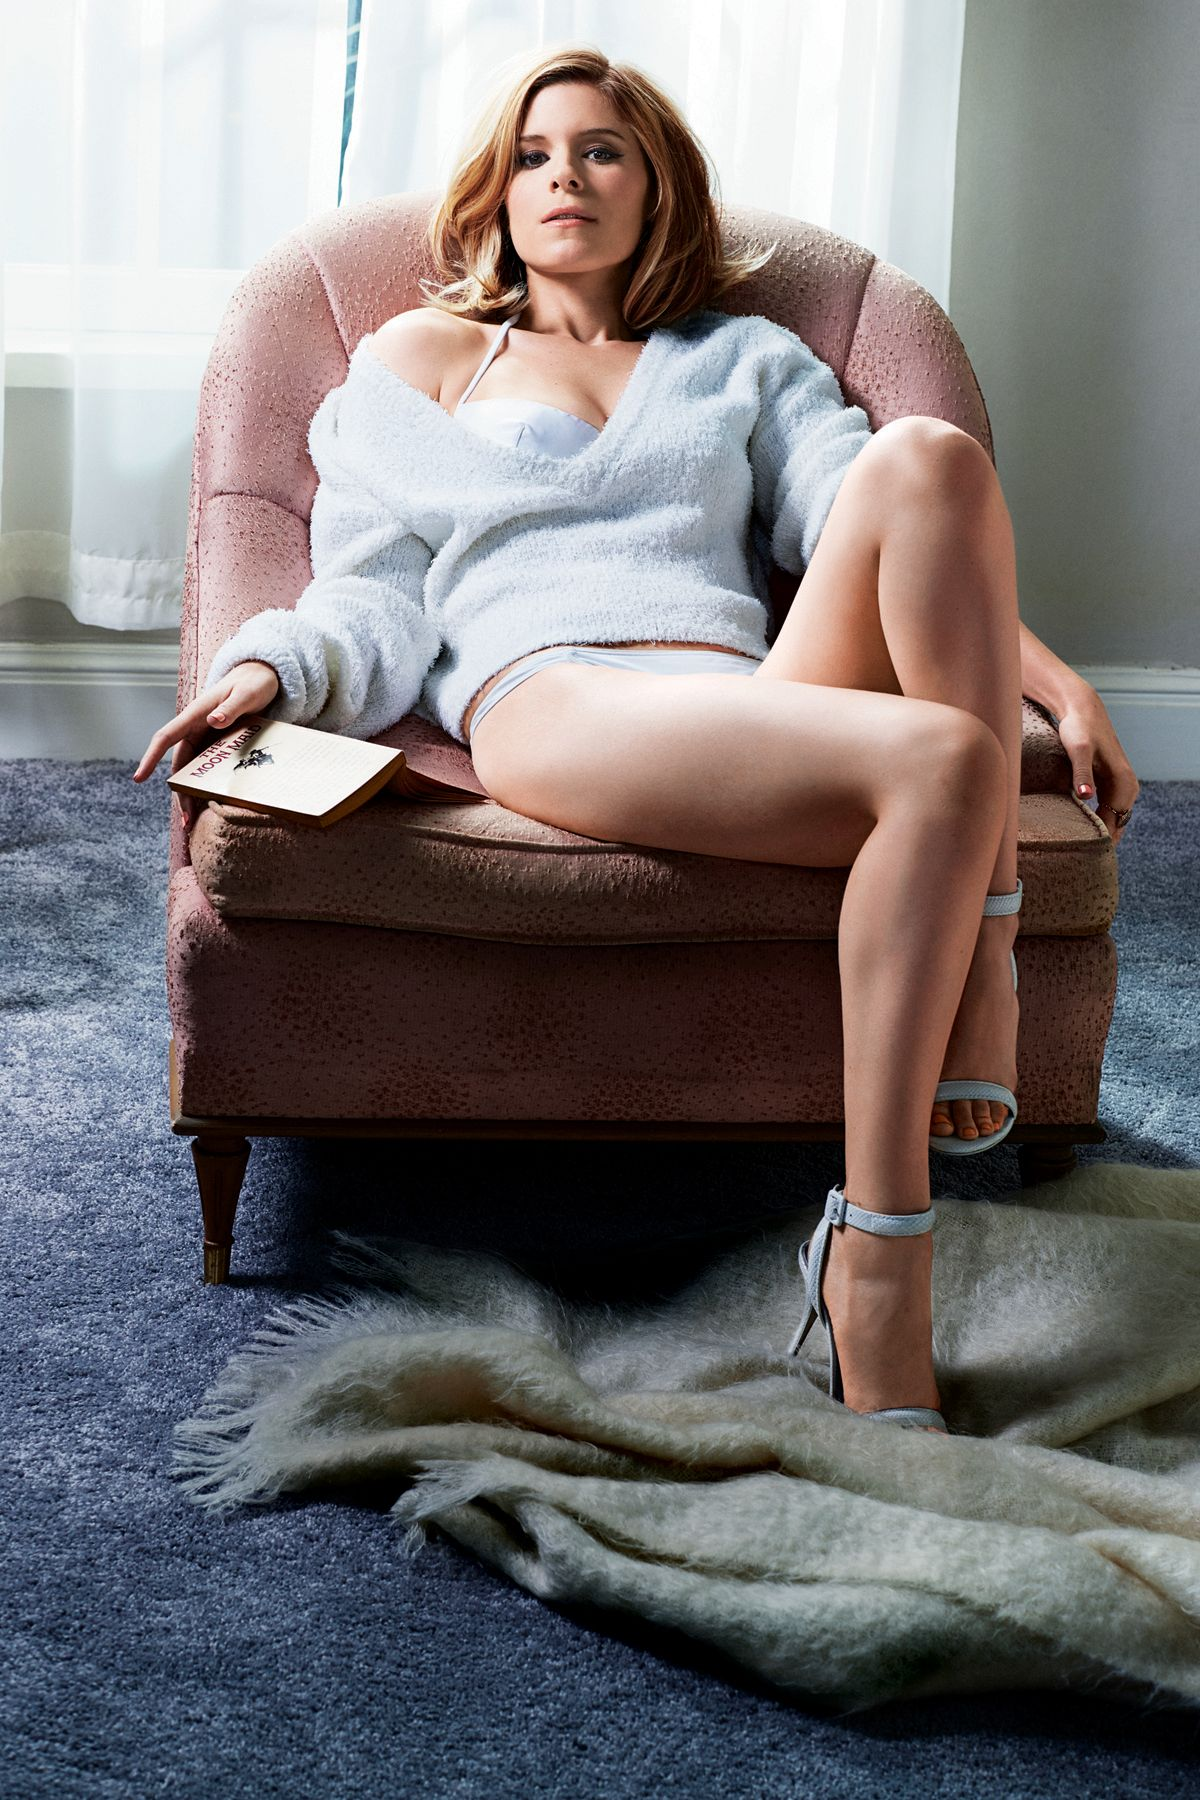 Ace Of The Pack House Of Cards Star Kate Mara In Her Underwear For